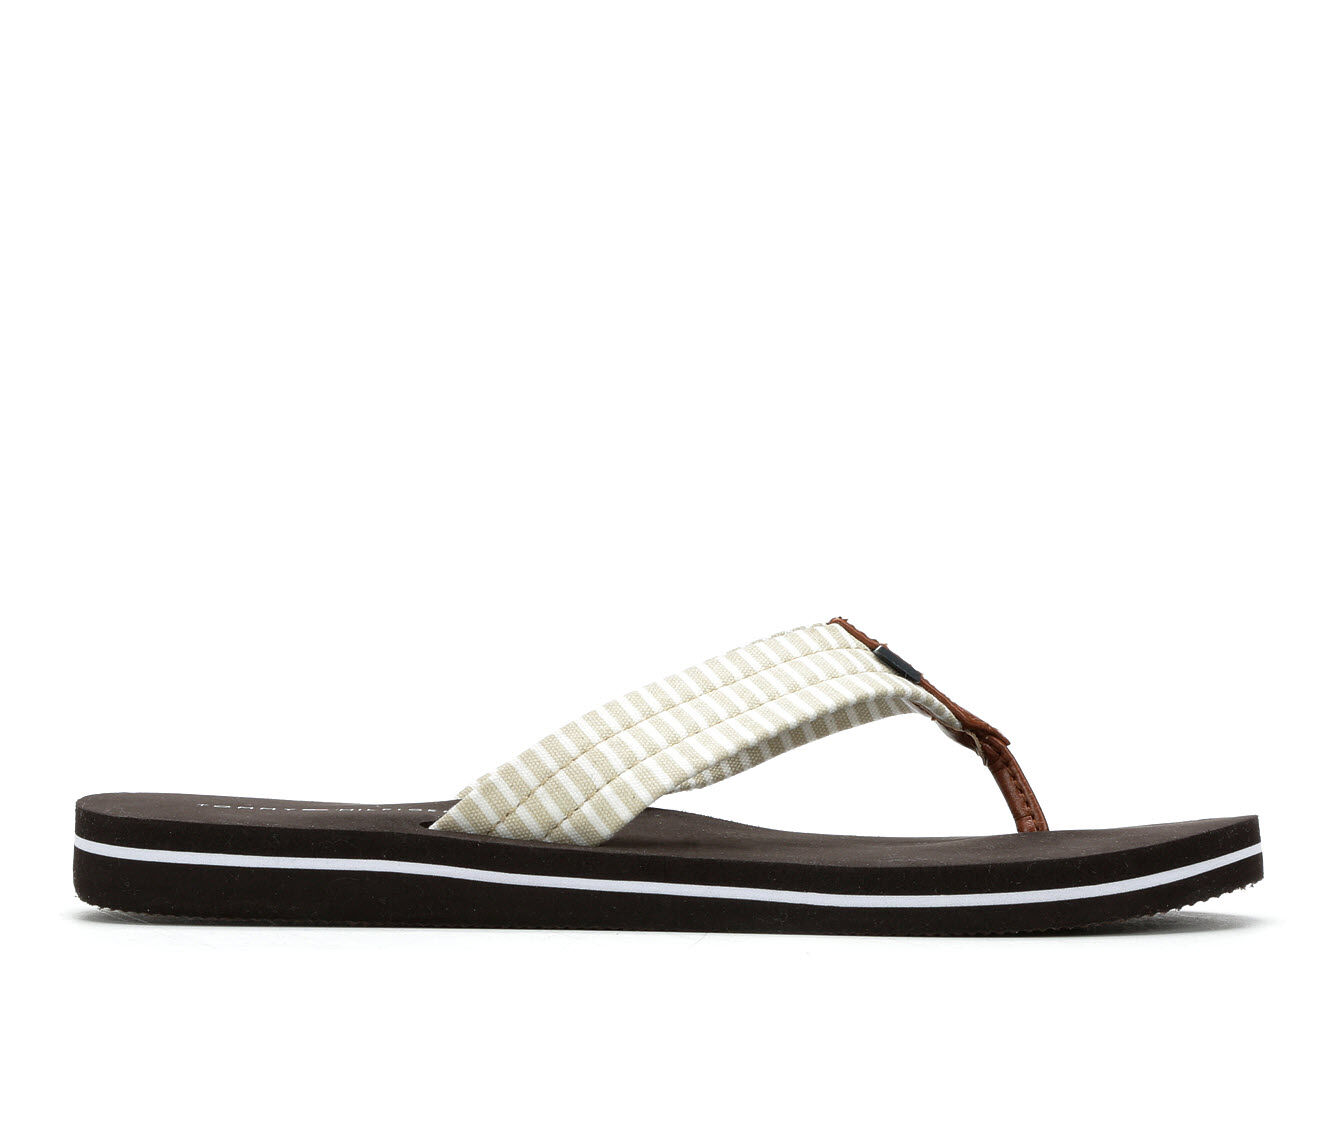 Women's Tommy Hilfiger Craft Sandals Oatmeal Multi